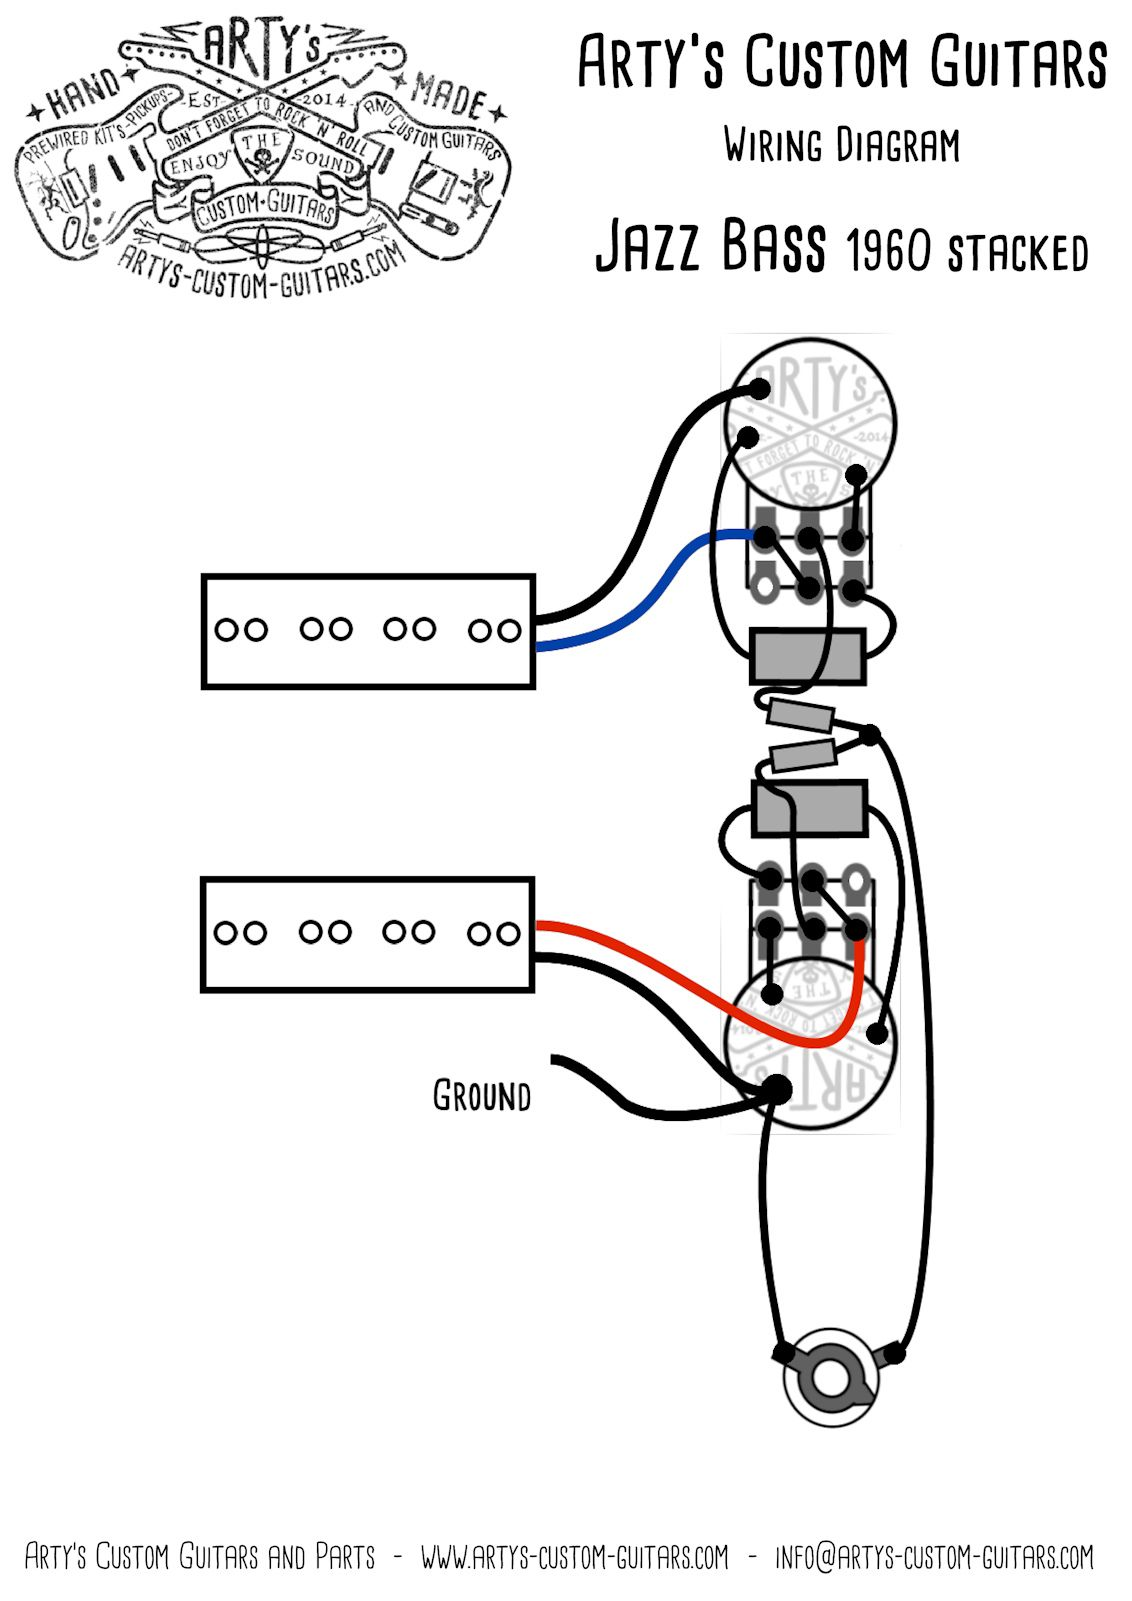 Arty's Custom Guitars Vintage Pre-wired prewired Kit wiring Assembly Harness  Arty Jazz Bass 1960